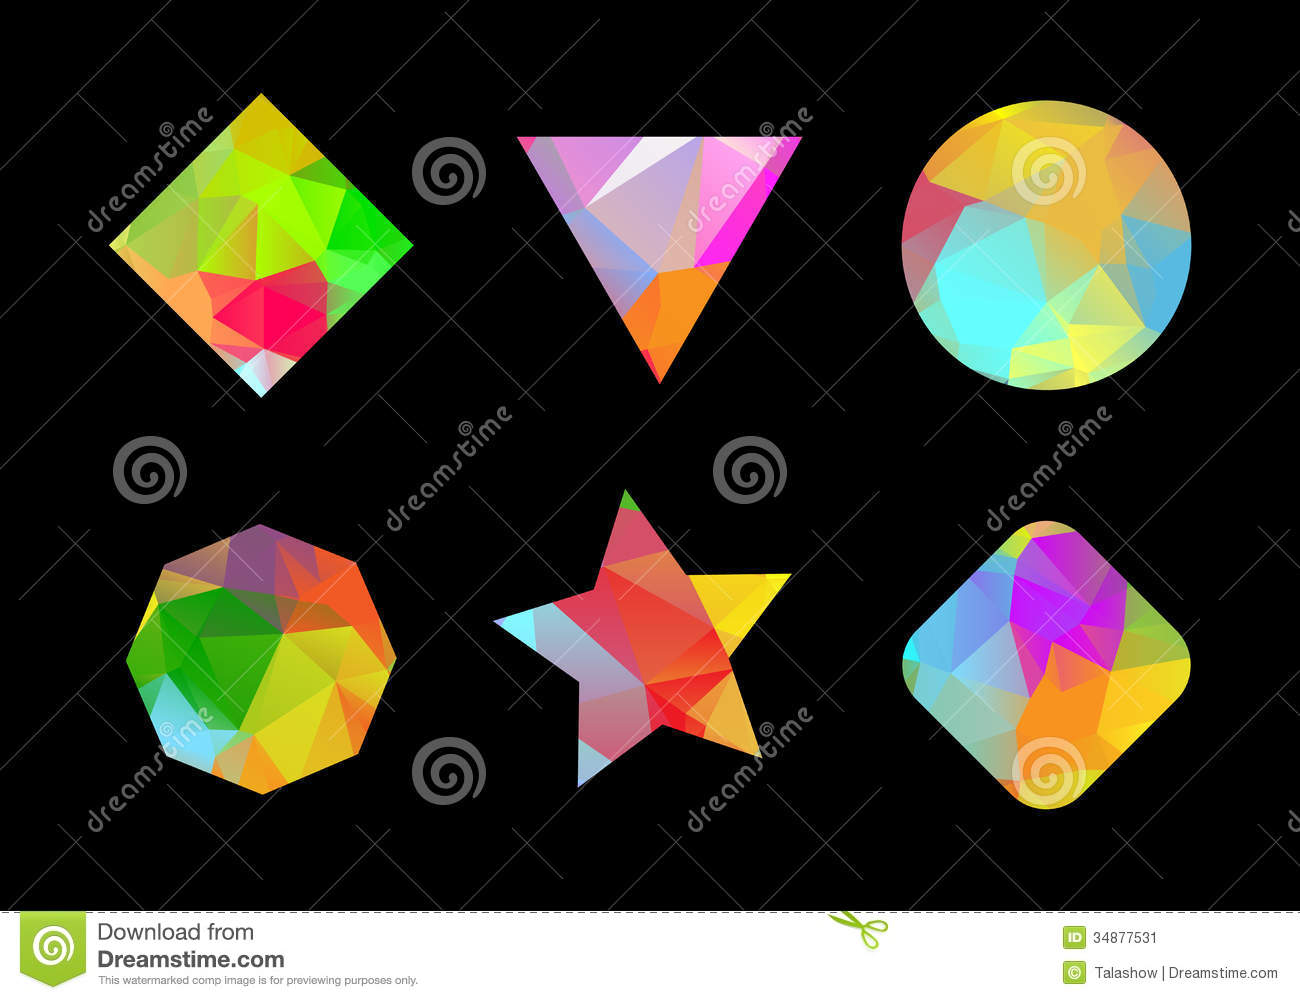 Set of colored geometric polygonal shapes.